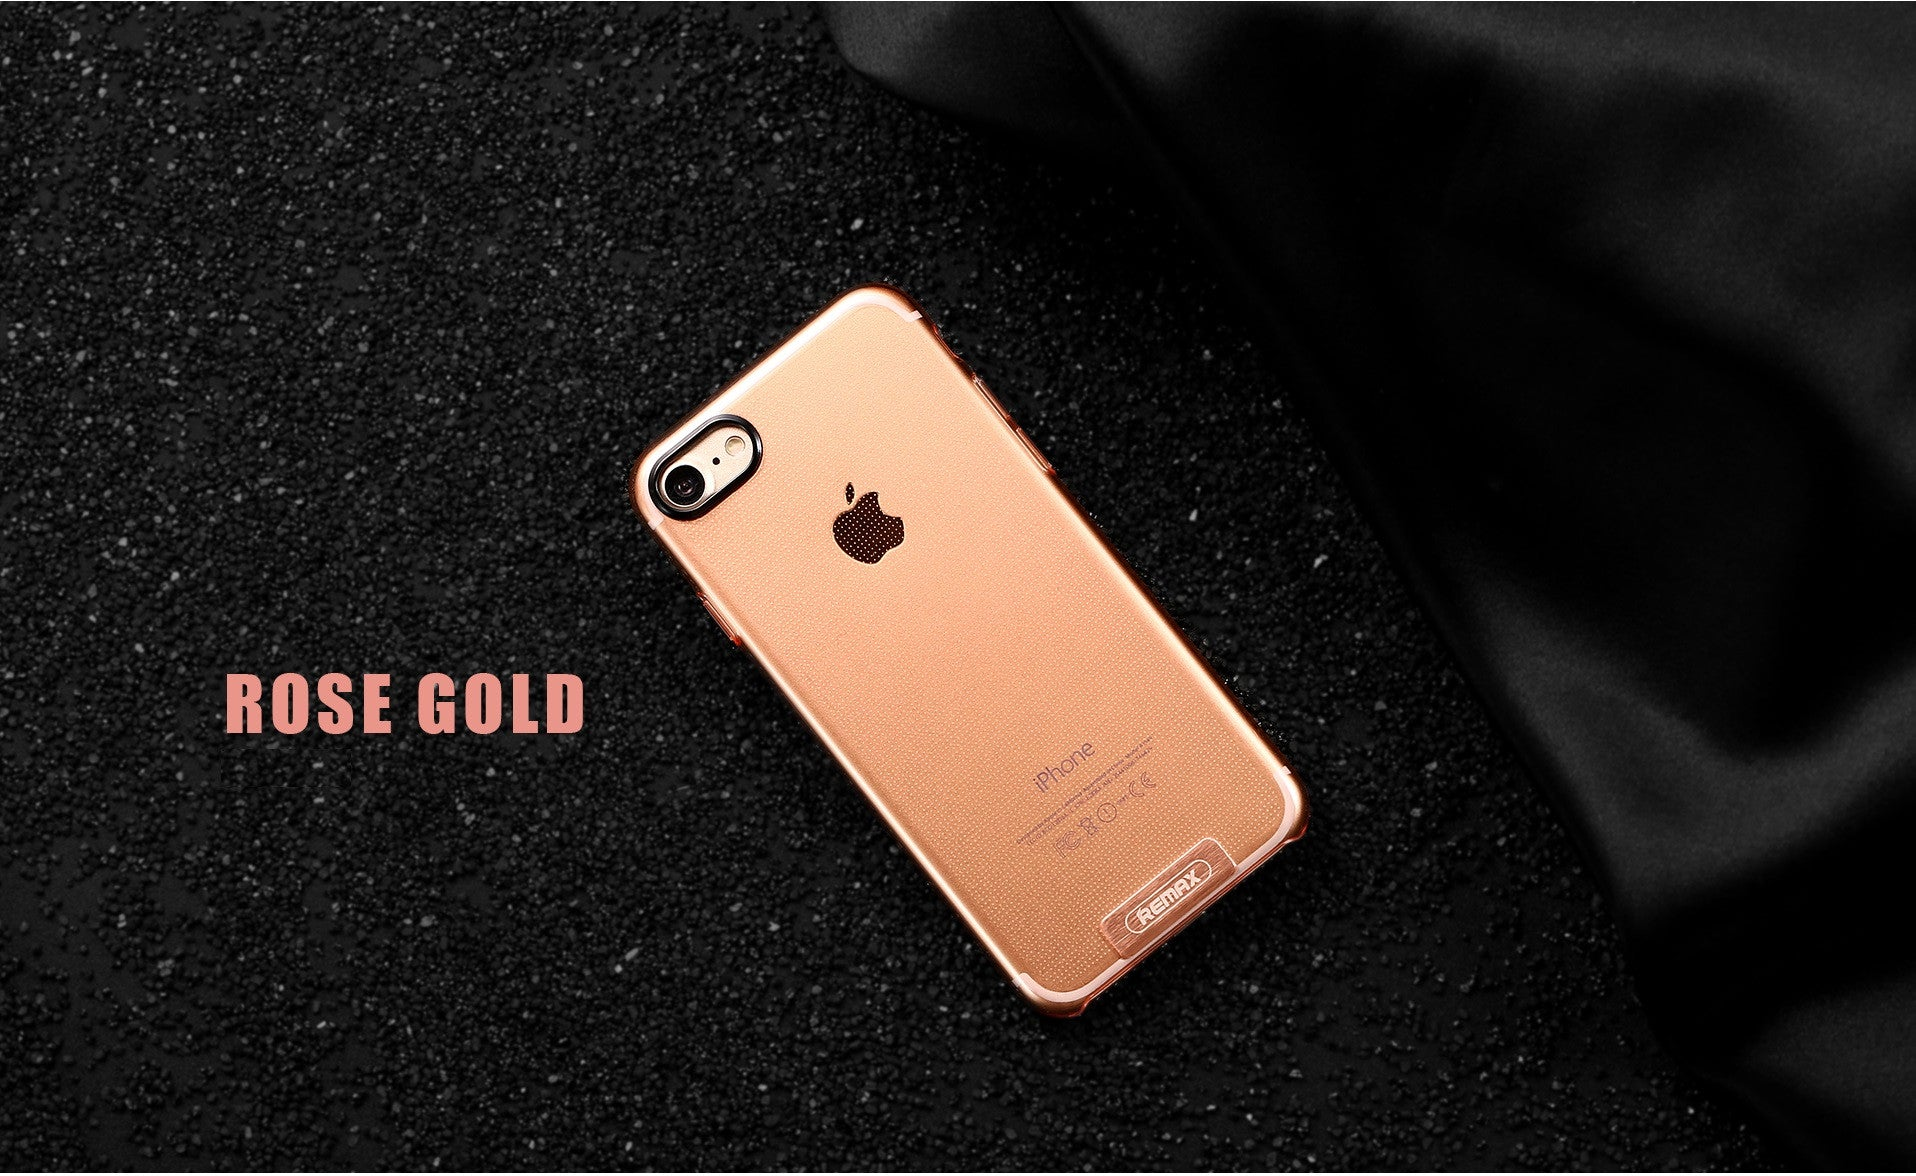 iREMAX Cell phone Mobile Accessories Wholesale, iPhone and Samsung Galaxy Cases,Tempered Glass, Data Cables, Bluetooth Speakers, Headphones, Power Banks iREMAX